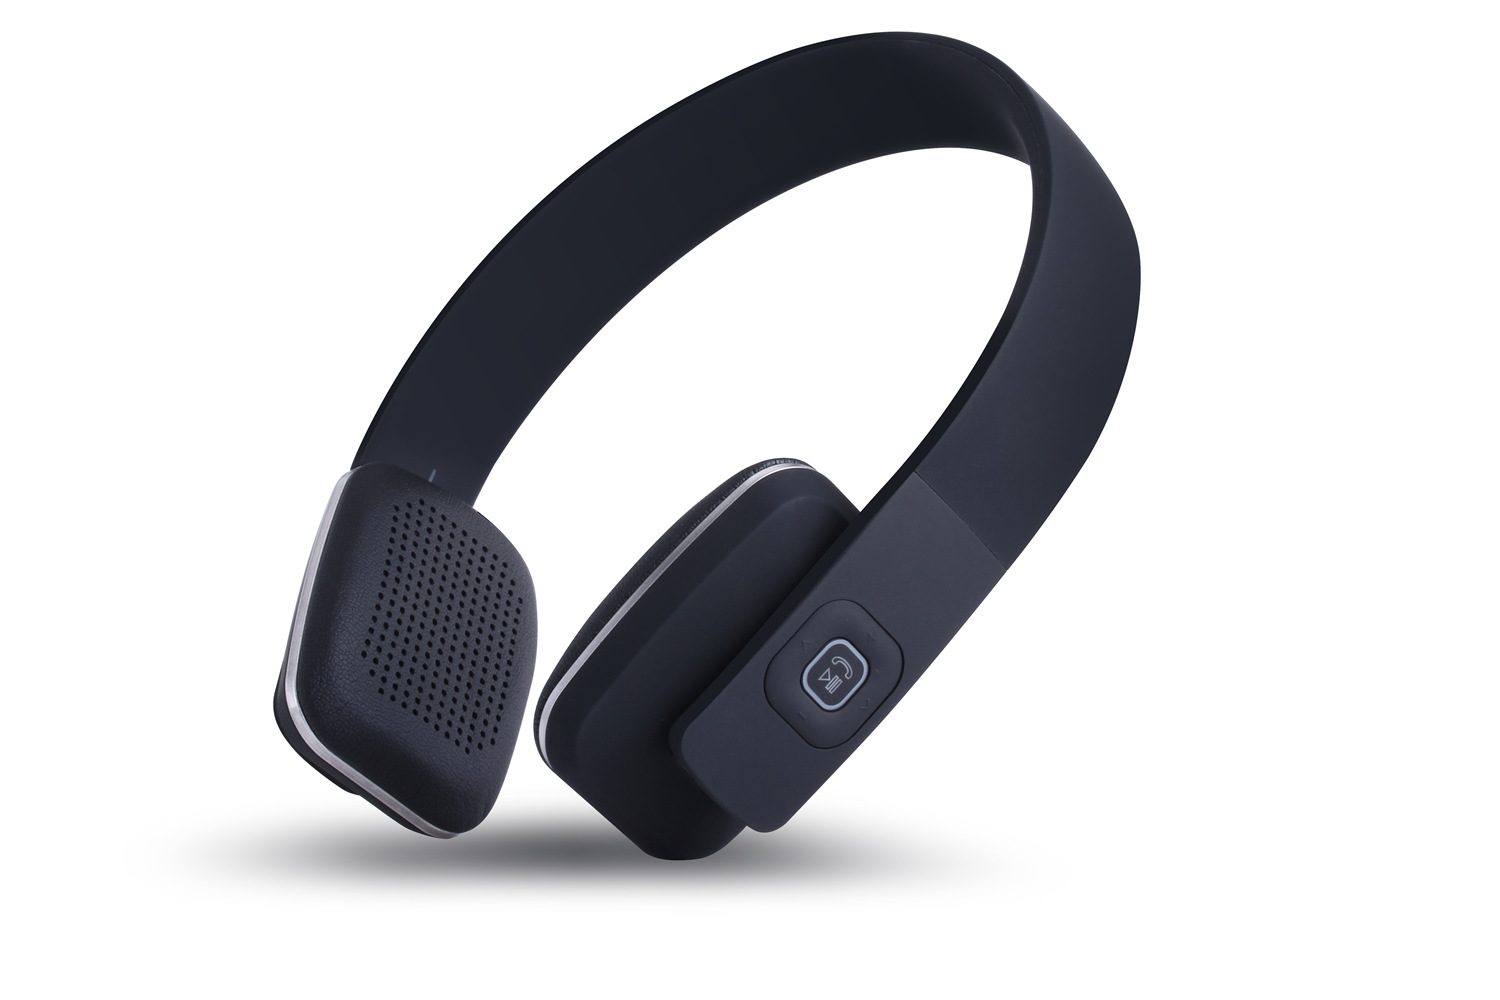 marsee bluetooth over ear headphones. Black Bedroom Furniture Sets. Home Design Ideas